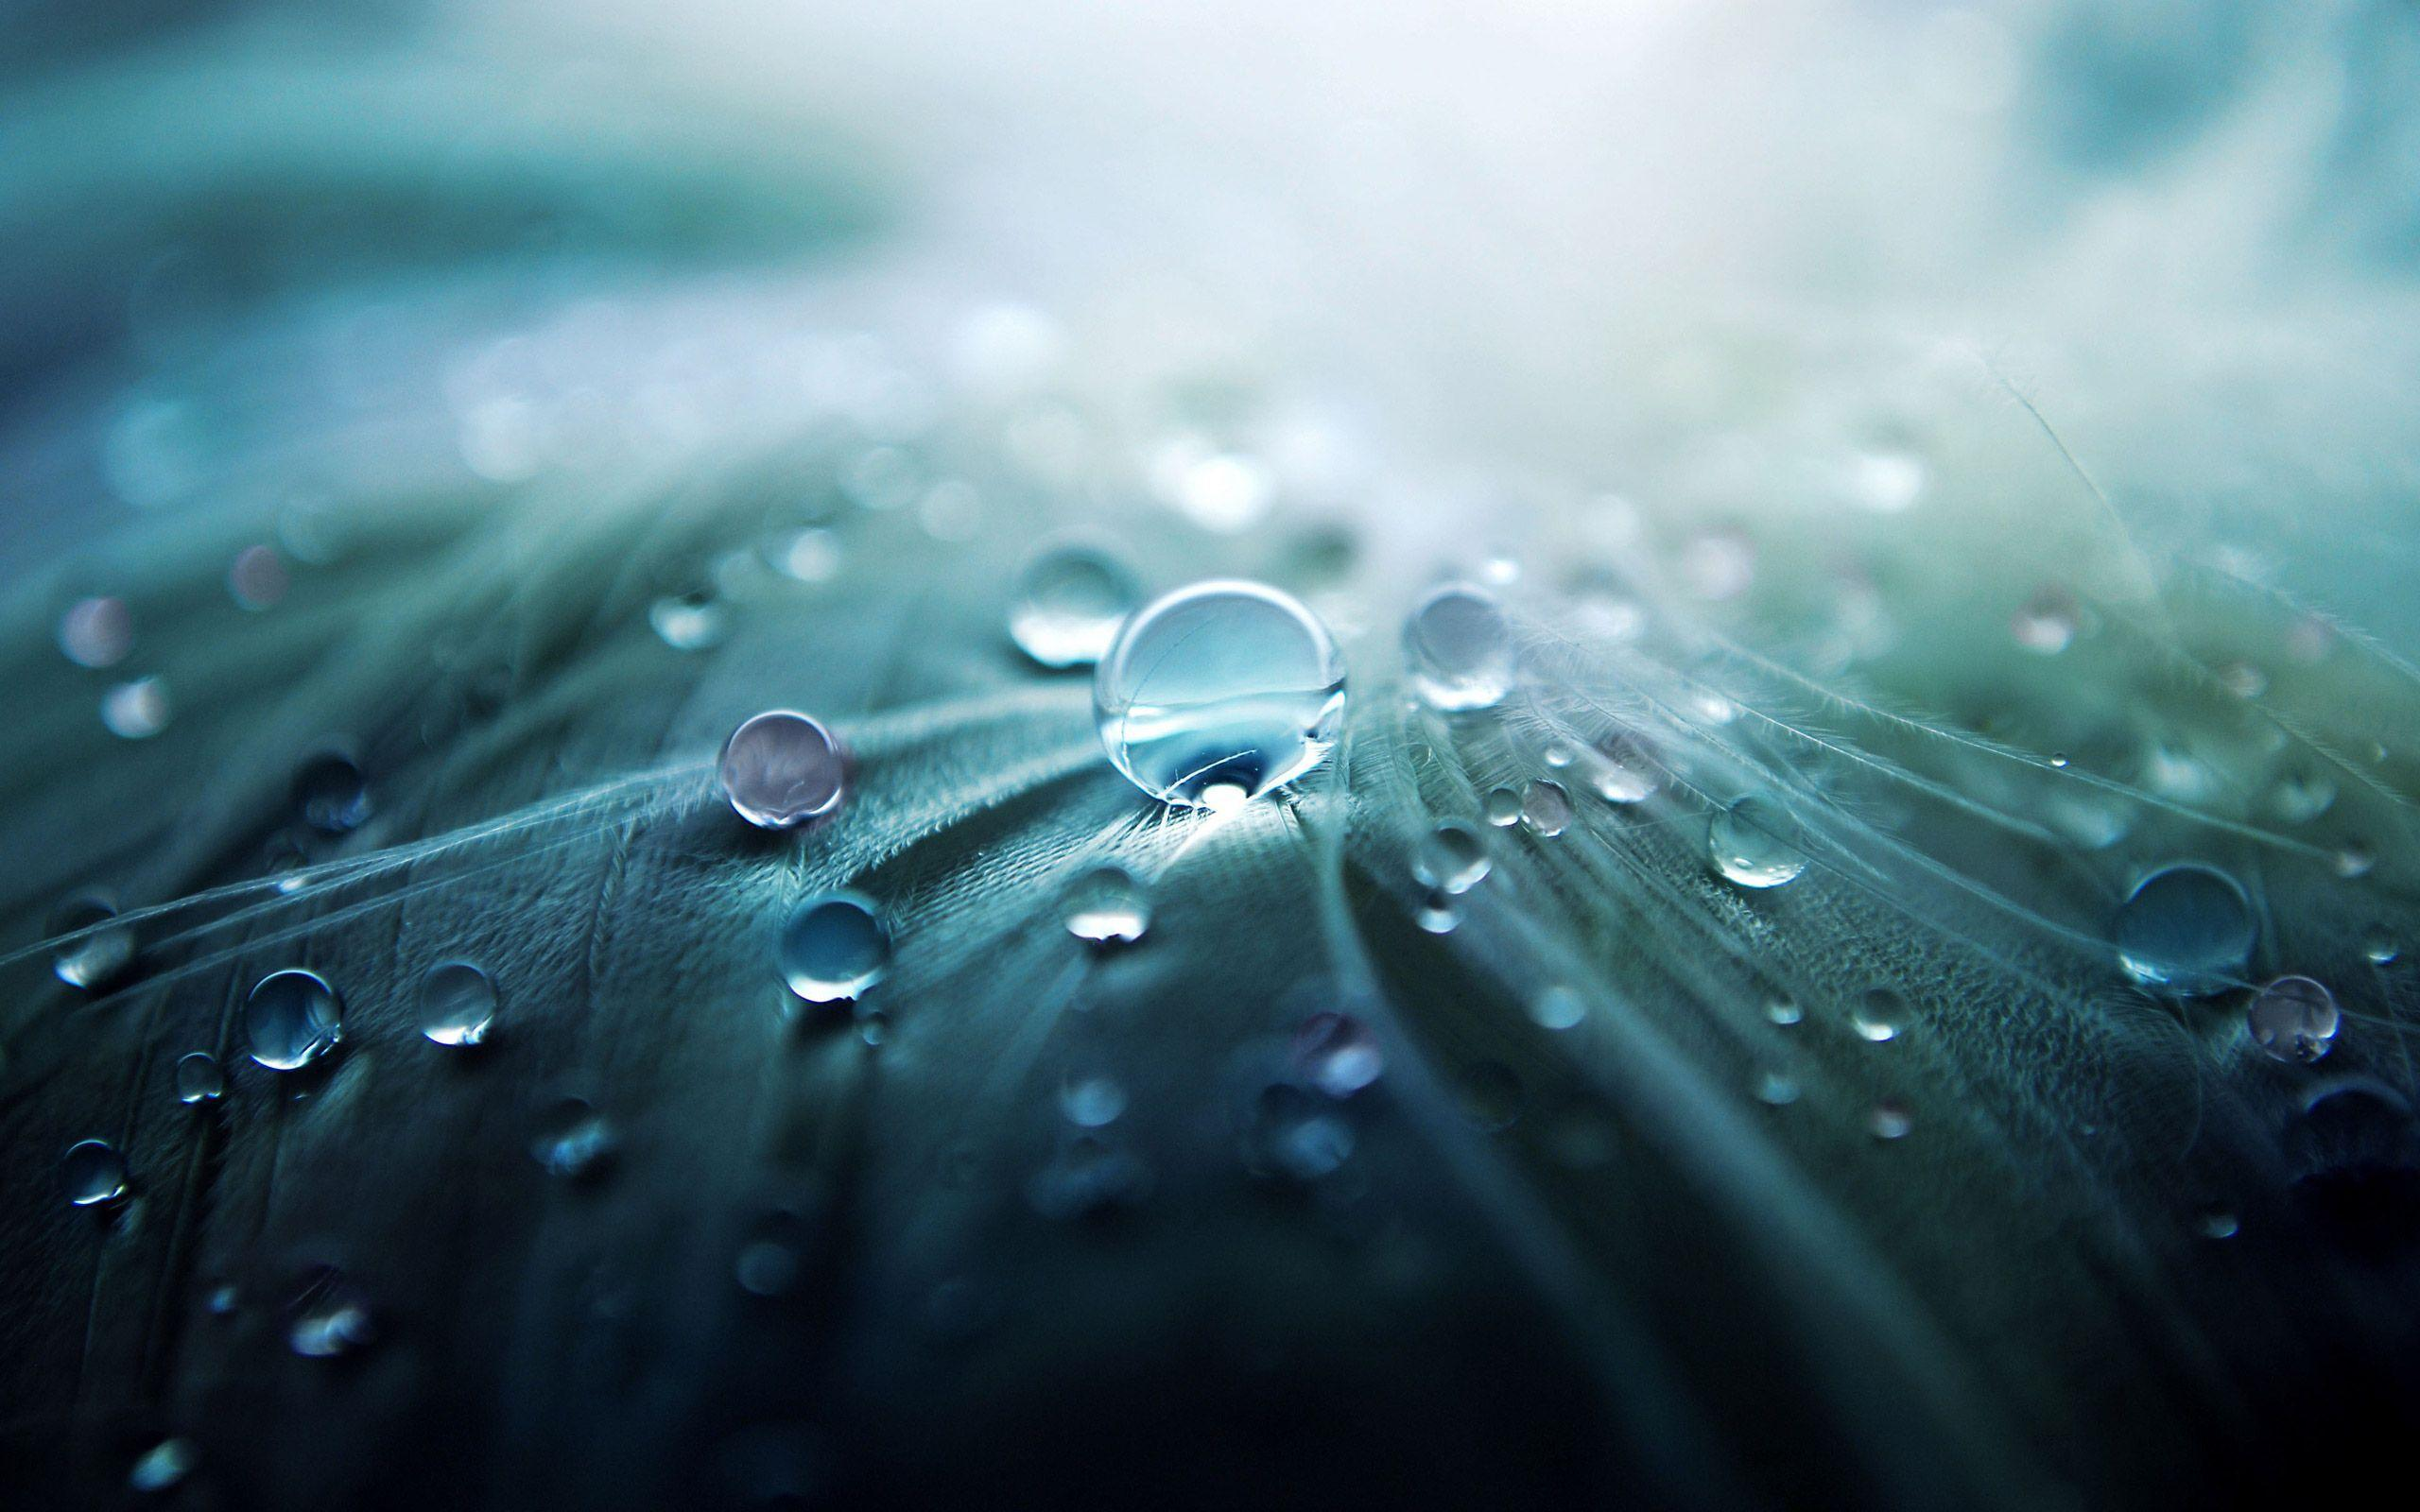 Water Drops Wallpapers - Full HD wallpaper search - page 4